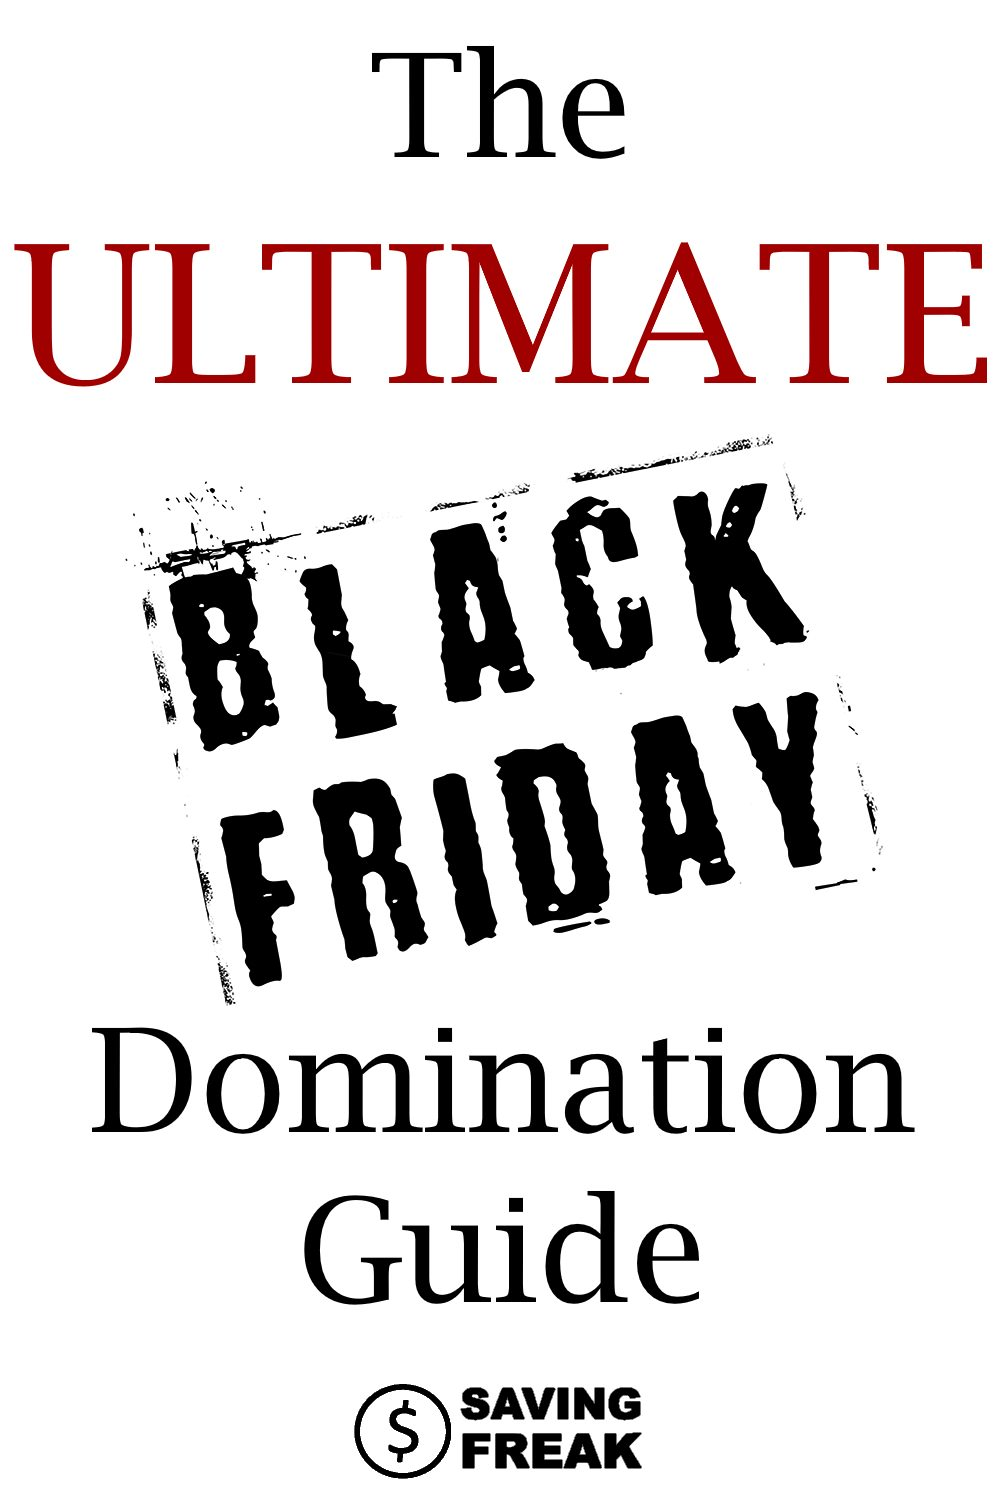 Learn all the ins and outs of shopping with this amazing Black Friday guide for shopping domination.